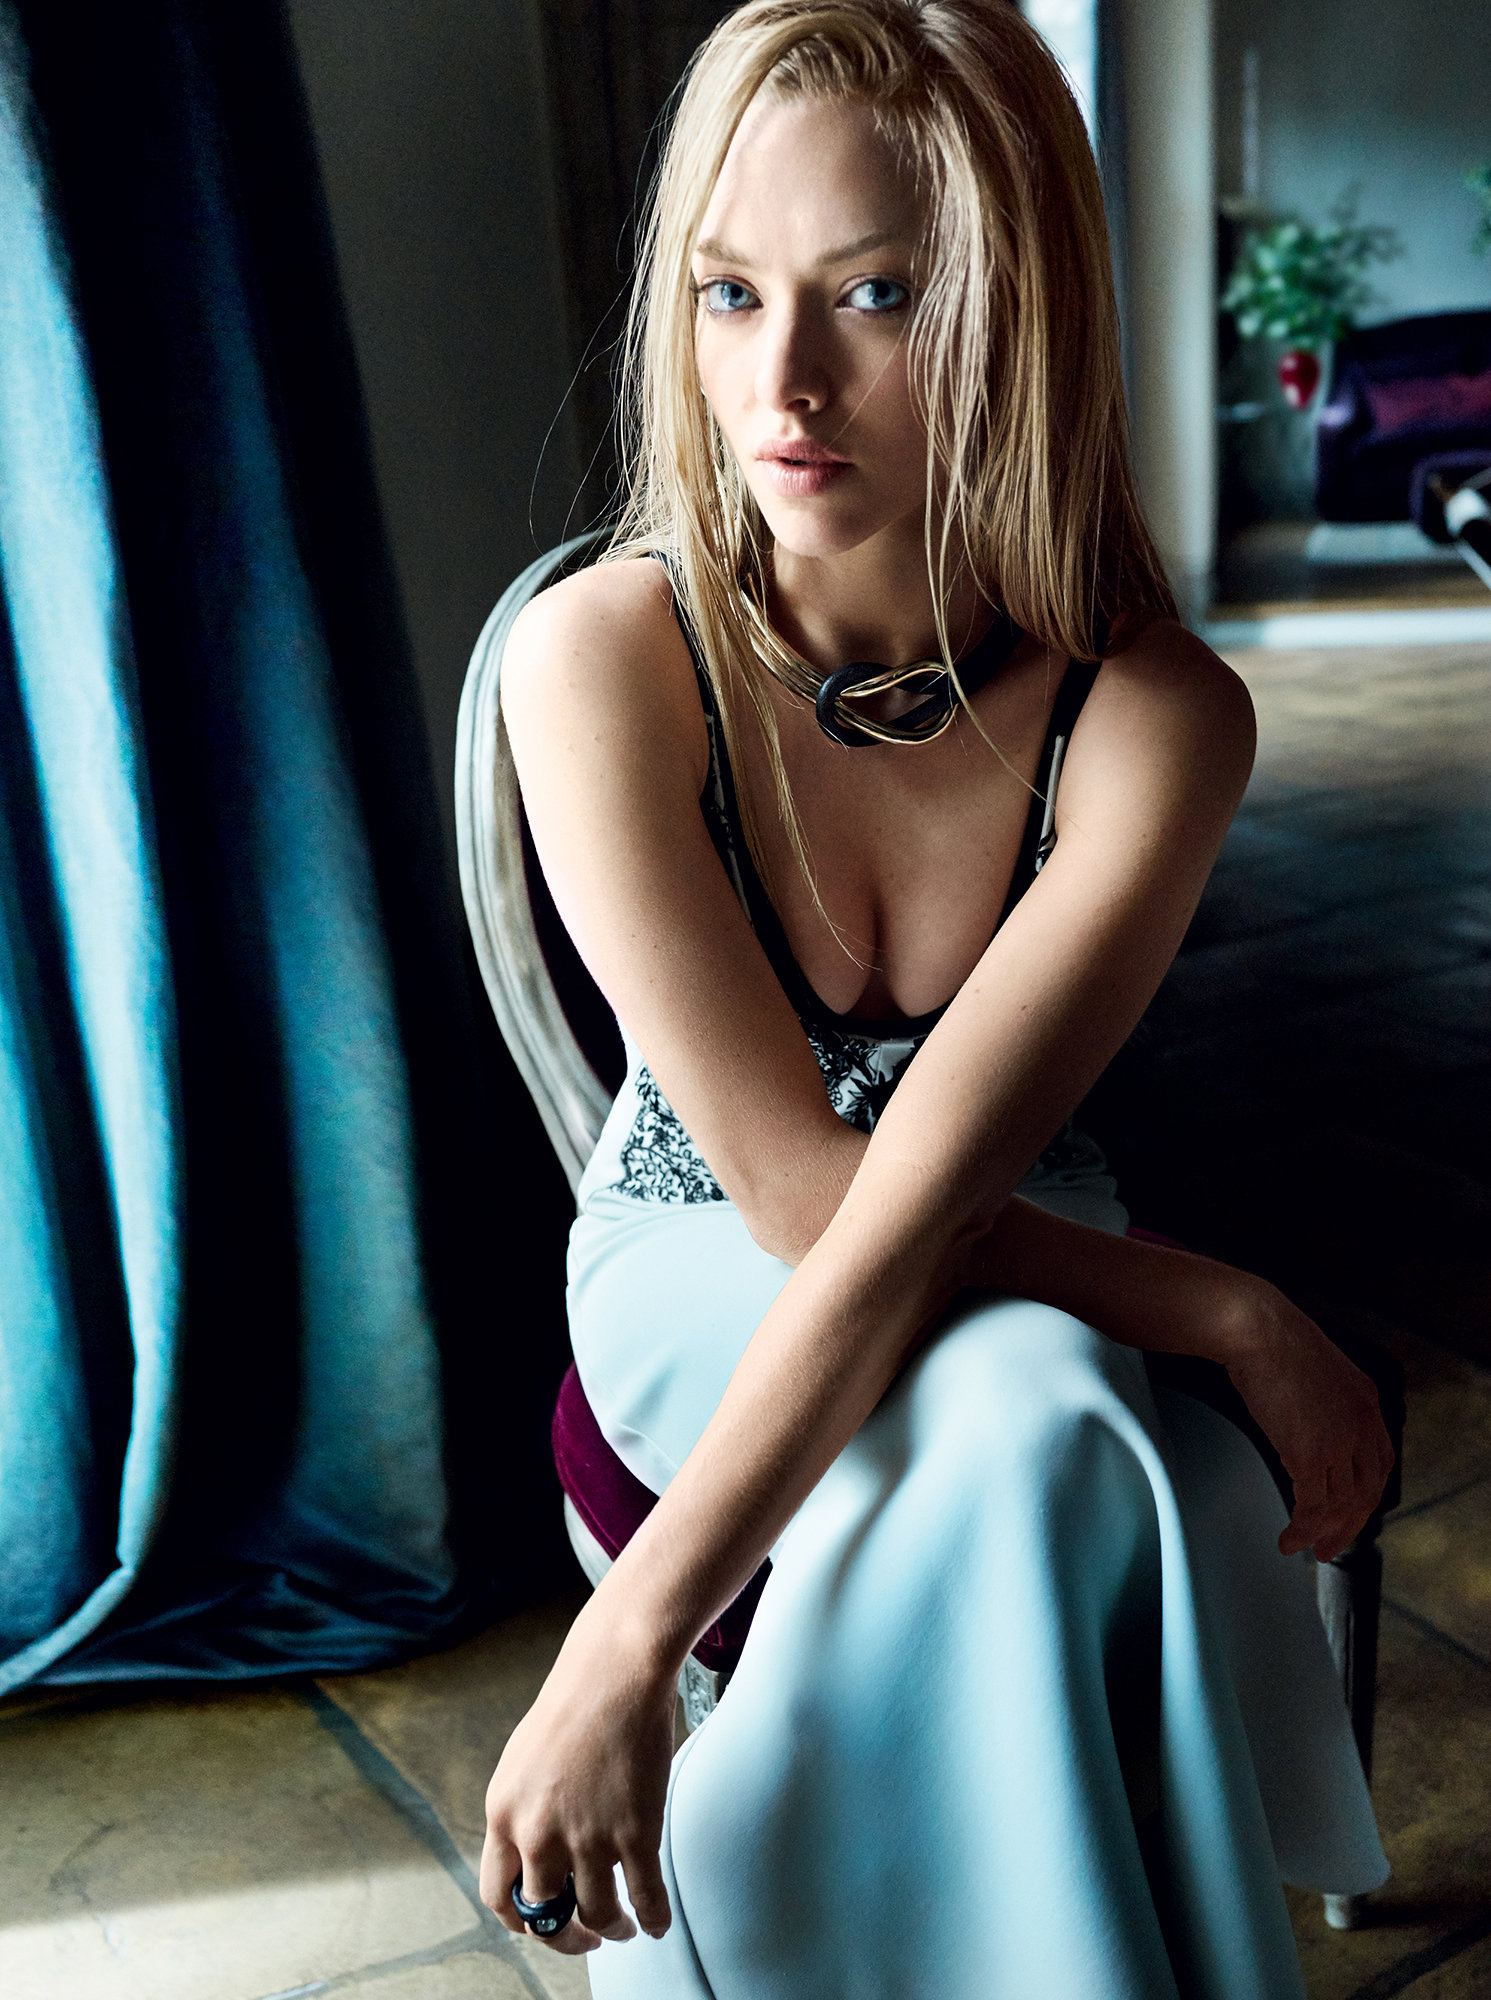 Amanda Seyfried Looks Stunning in her Cover Shoot for Vogue Ealuxe (8)